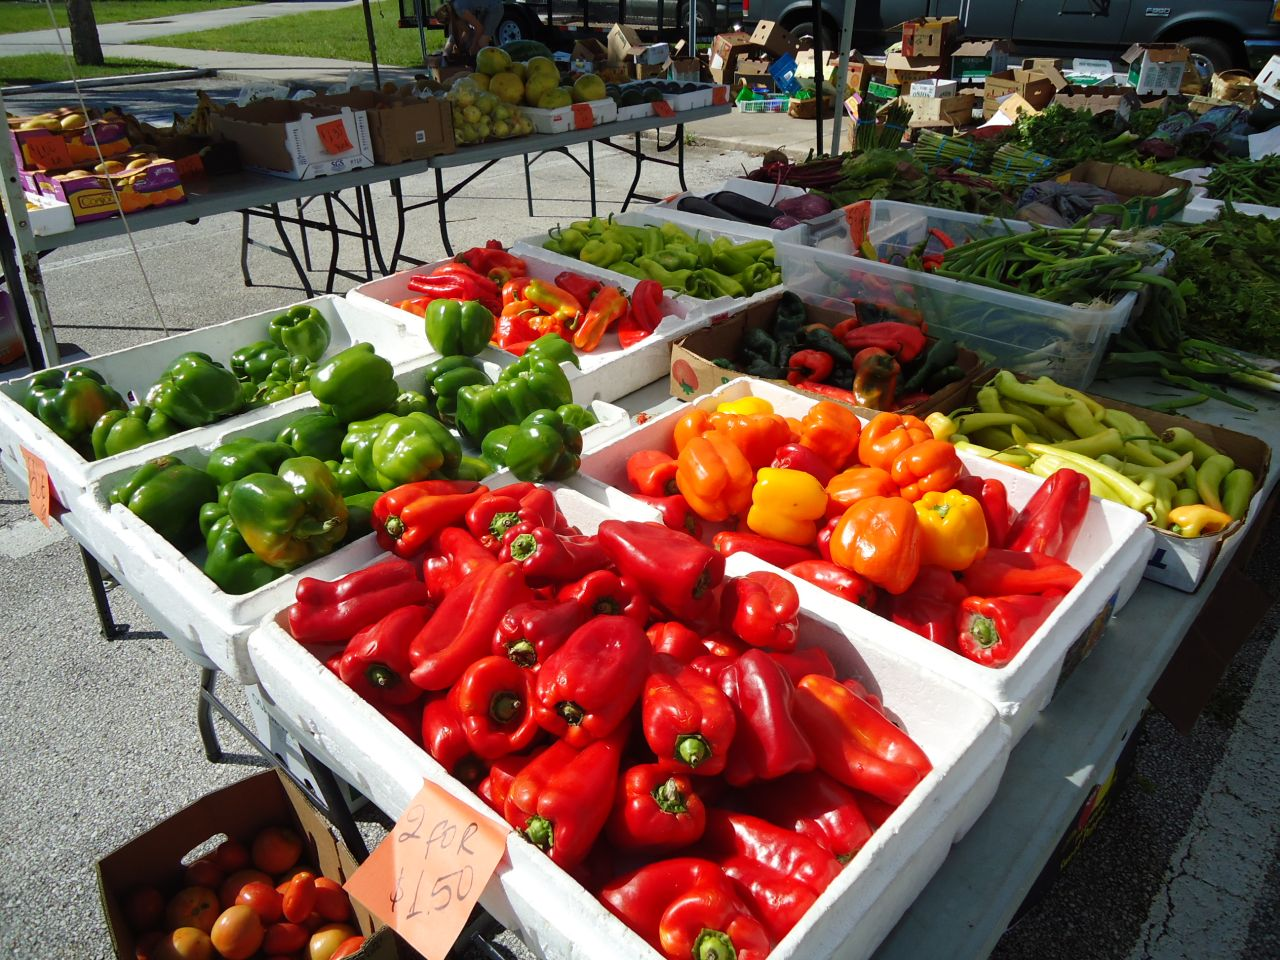 A variety of produce is available at the Daytona Downtown Farmers Market